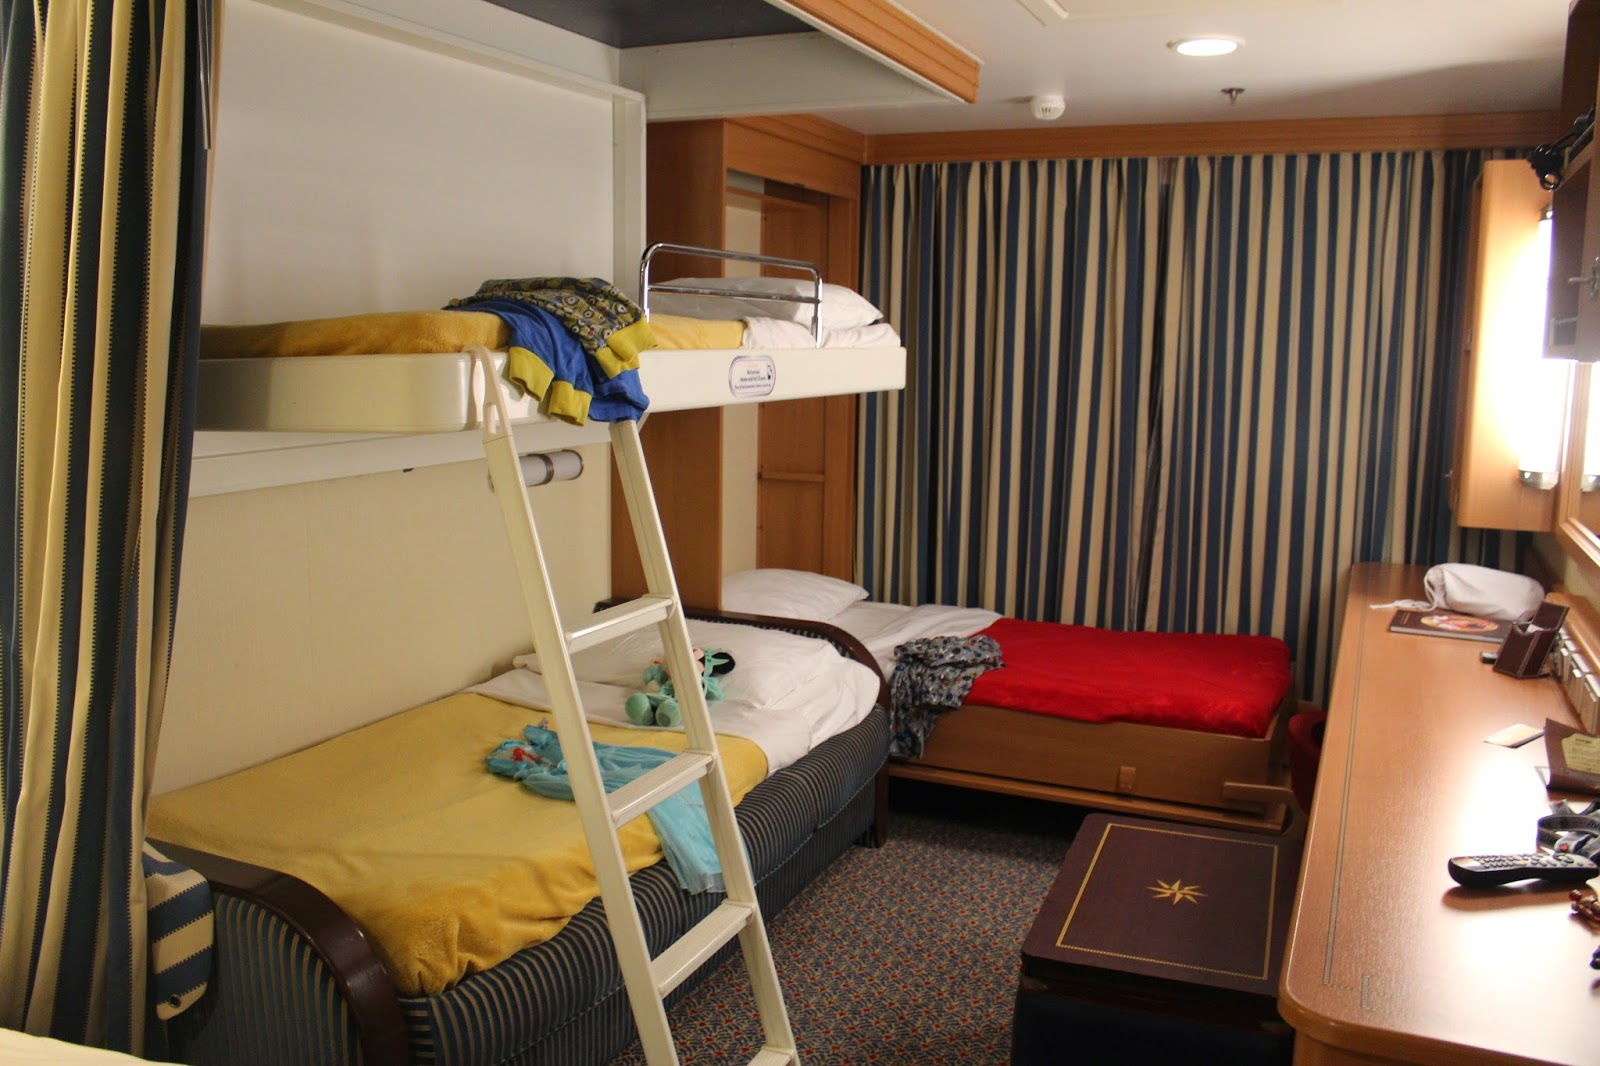 disney dream sofa bed brown leather corner northern ireland saving for a fantasy trip report part 2 embarking the and here is how room looked at night bunkbeds over murphy heavy curtain separates kids area from adult queen